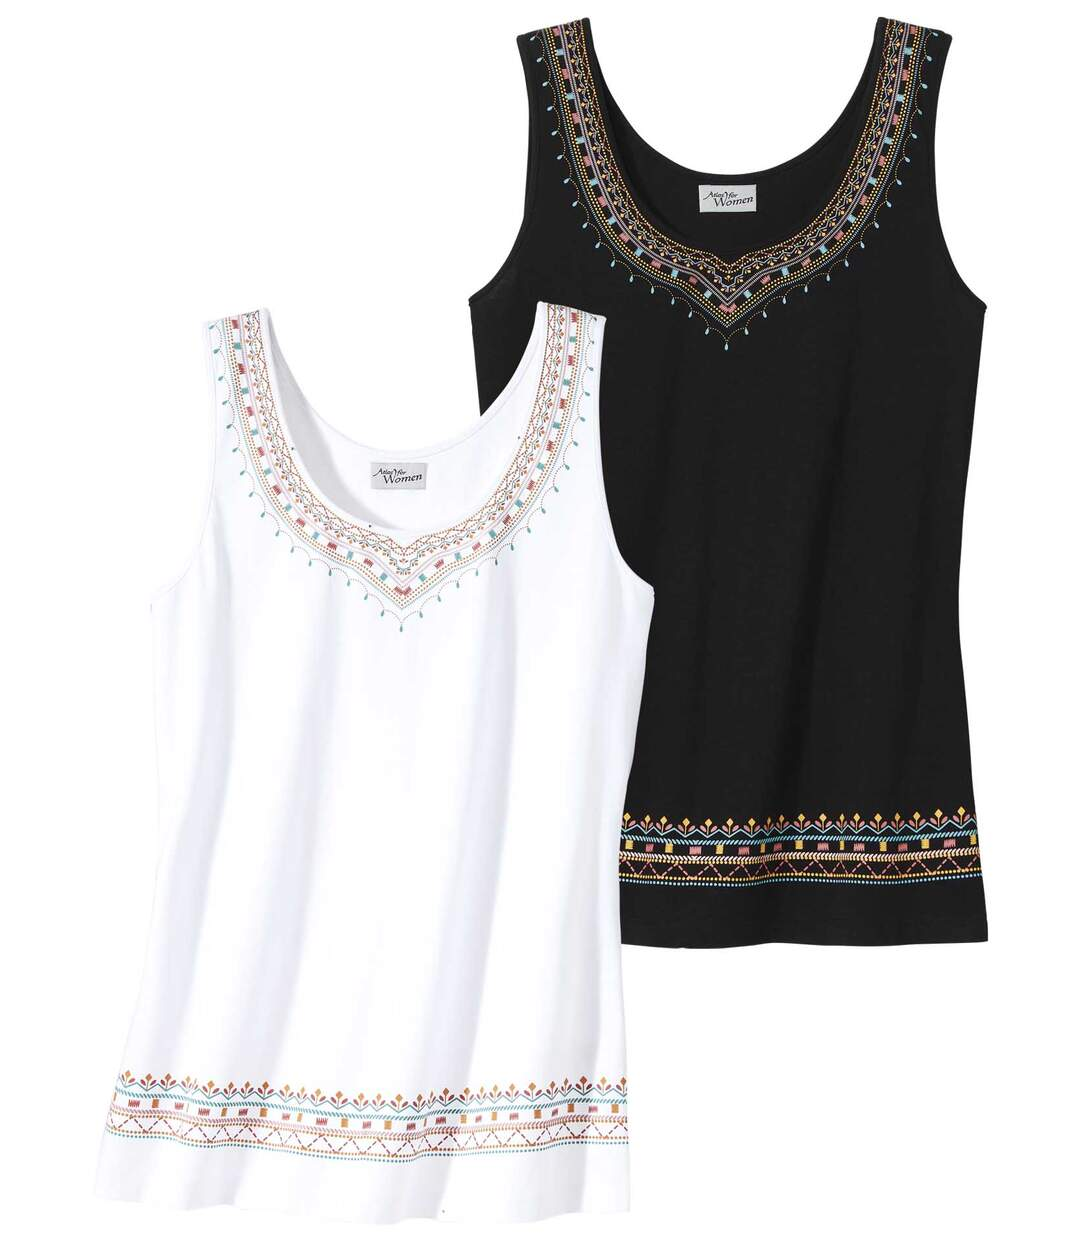 Pack of 2 Women's Vest Tops - Black White